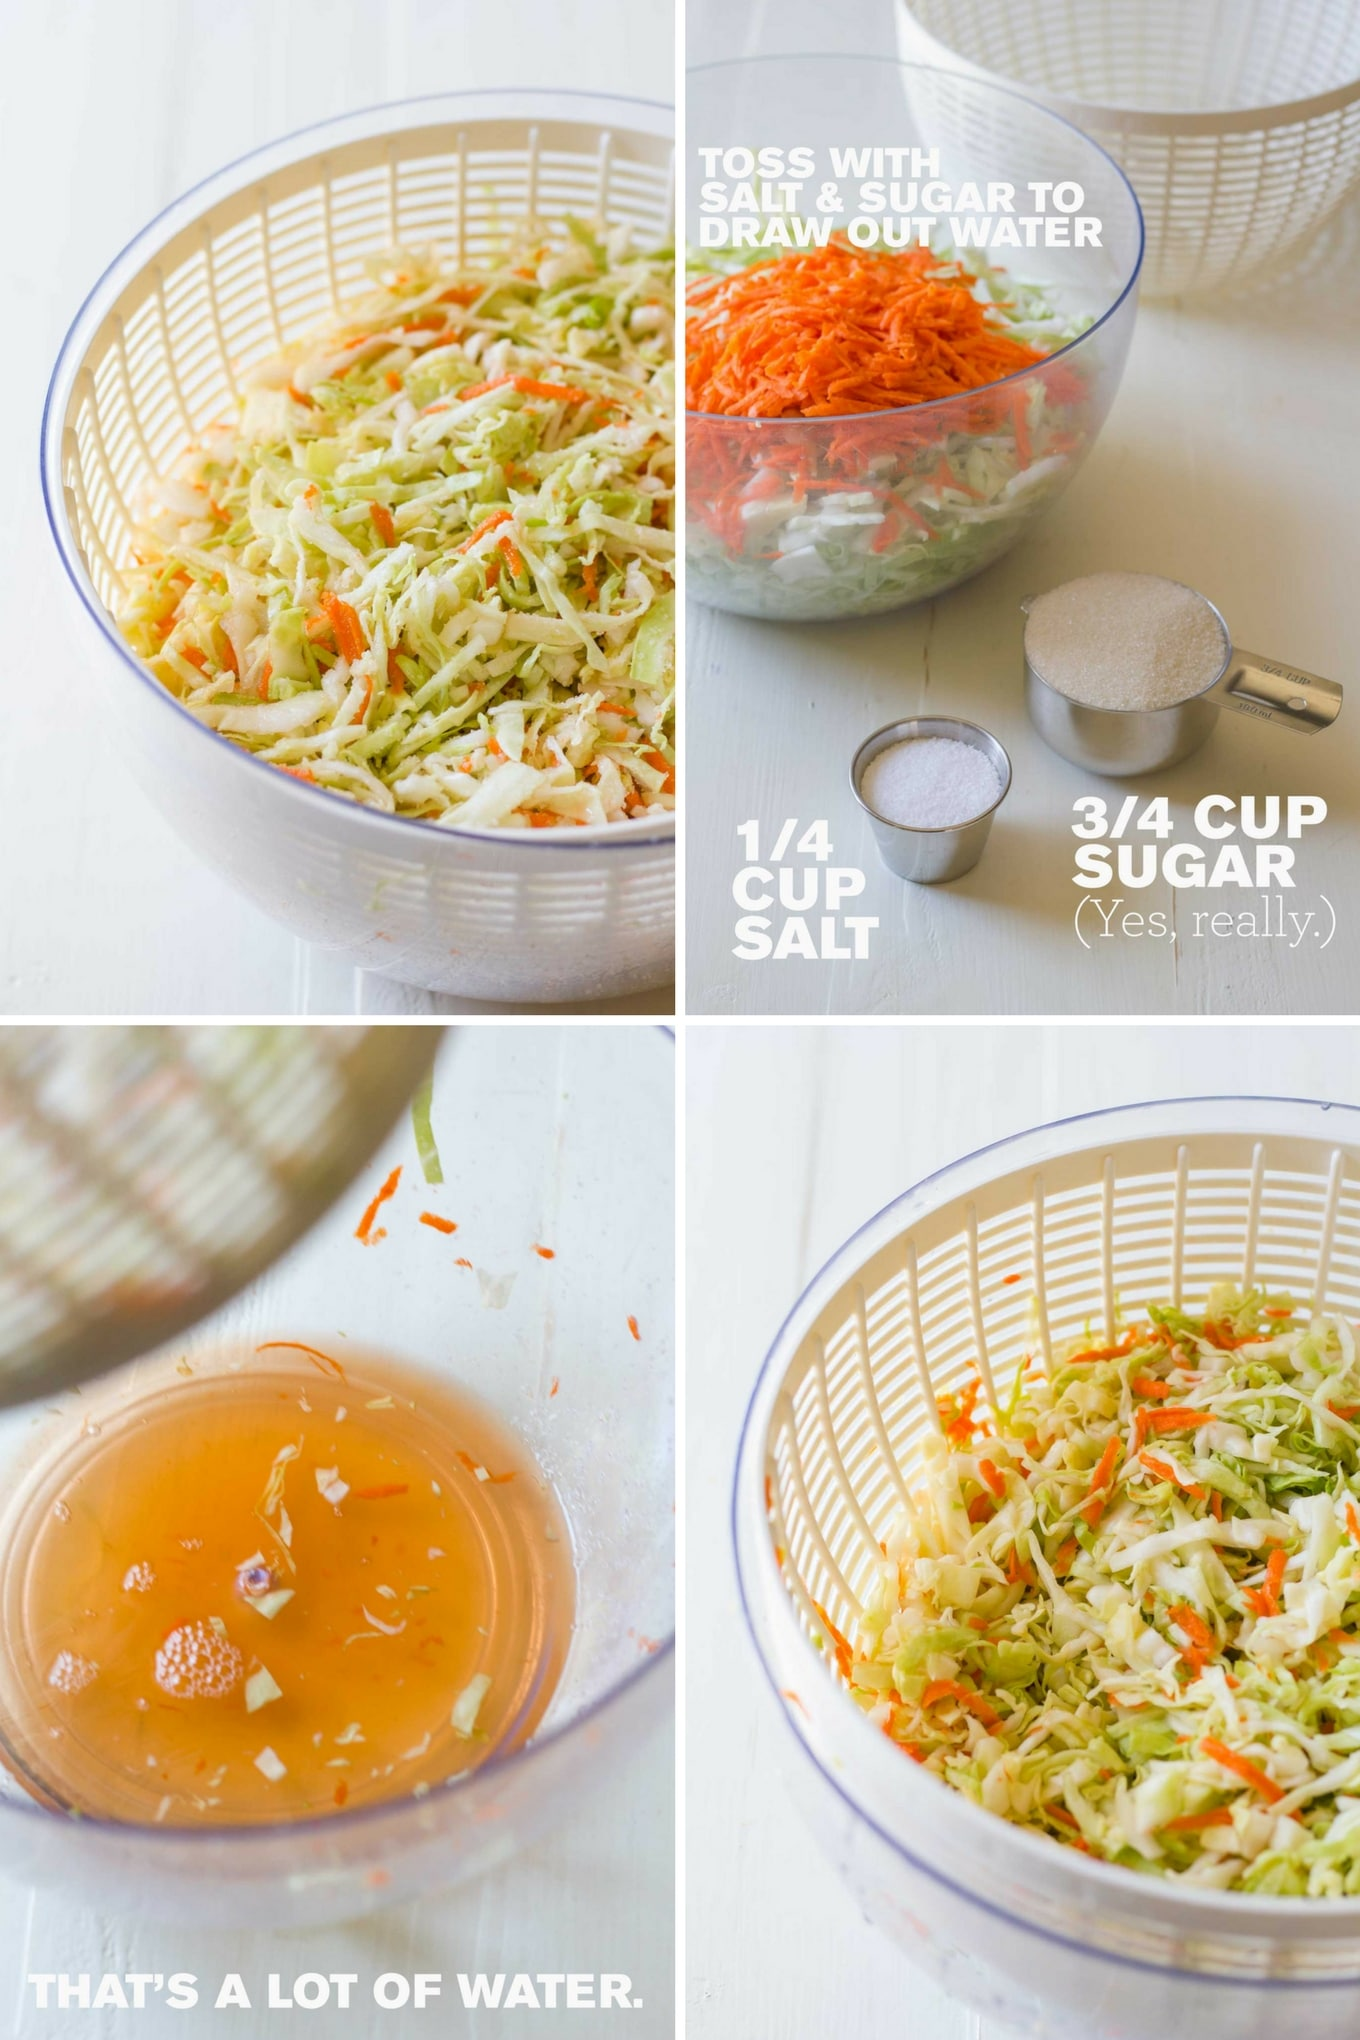 Perfect Vegan Coleslaw   collage of cabbage and carrots tossed with salt and sugar to remove water   Plant-based   Oil-free   http://www.eatwithinyourmeans.com/